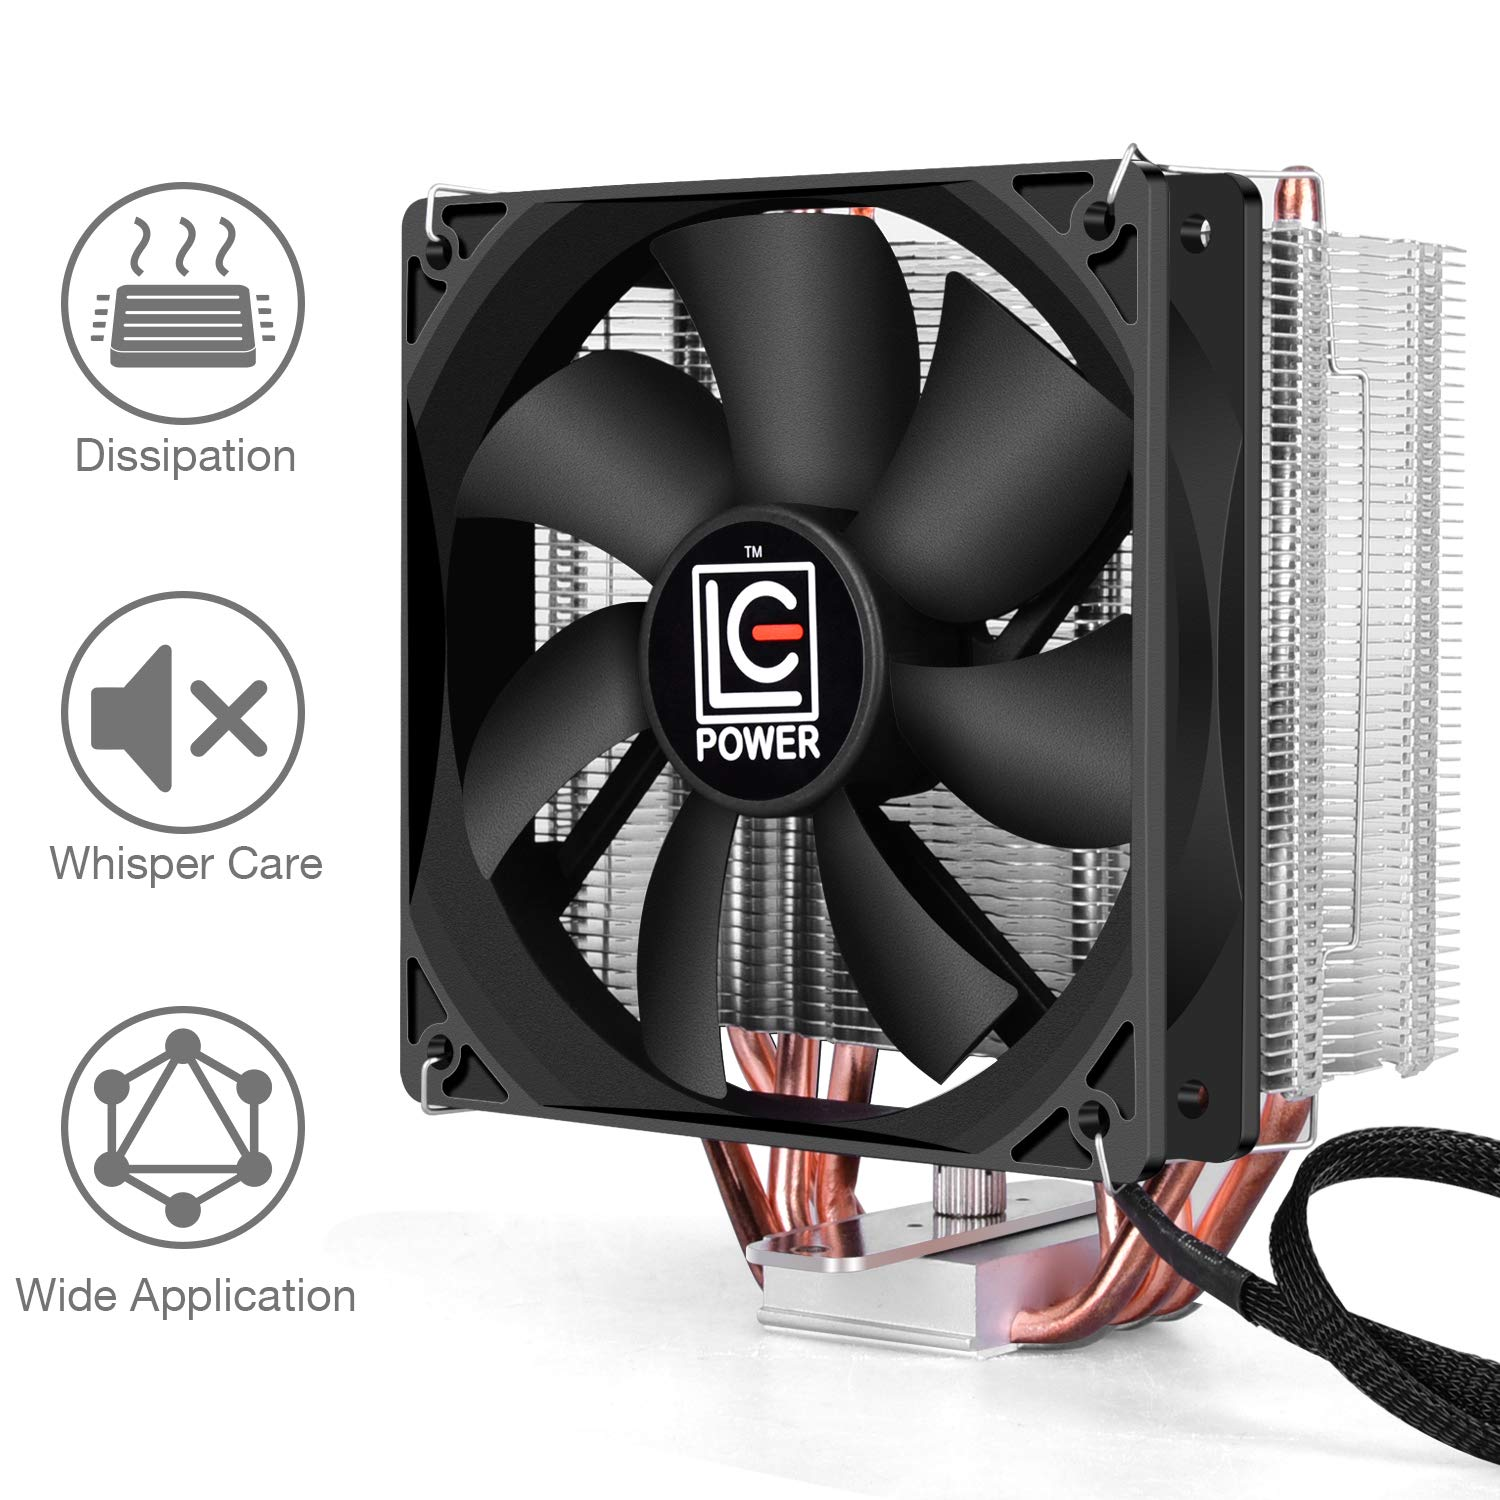 LC-POWER CPU Cooler - Silent CPU Cooler for Computer Gaming High Performance Cooler CPU for LGA 1151, 1155, 1150, 775, AMD3, 4, i5, i7, High Performance & Long Lasting Use, 3 Years Warranty